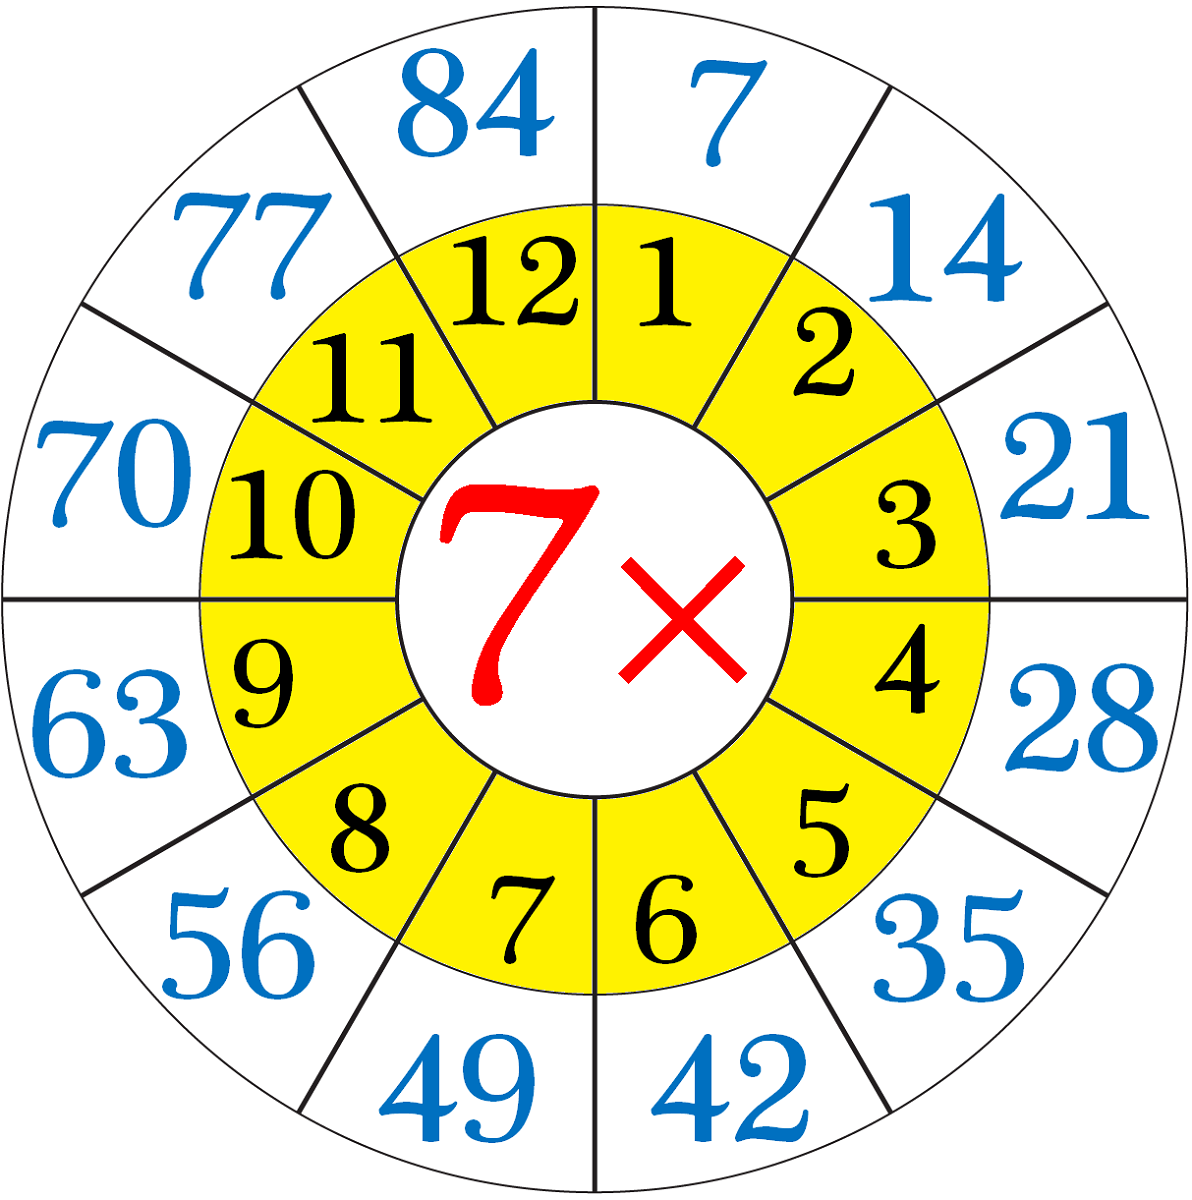 7 times table chart circle